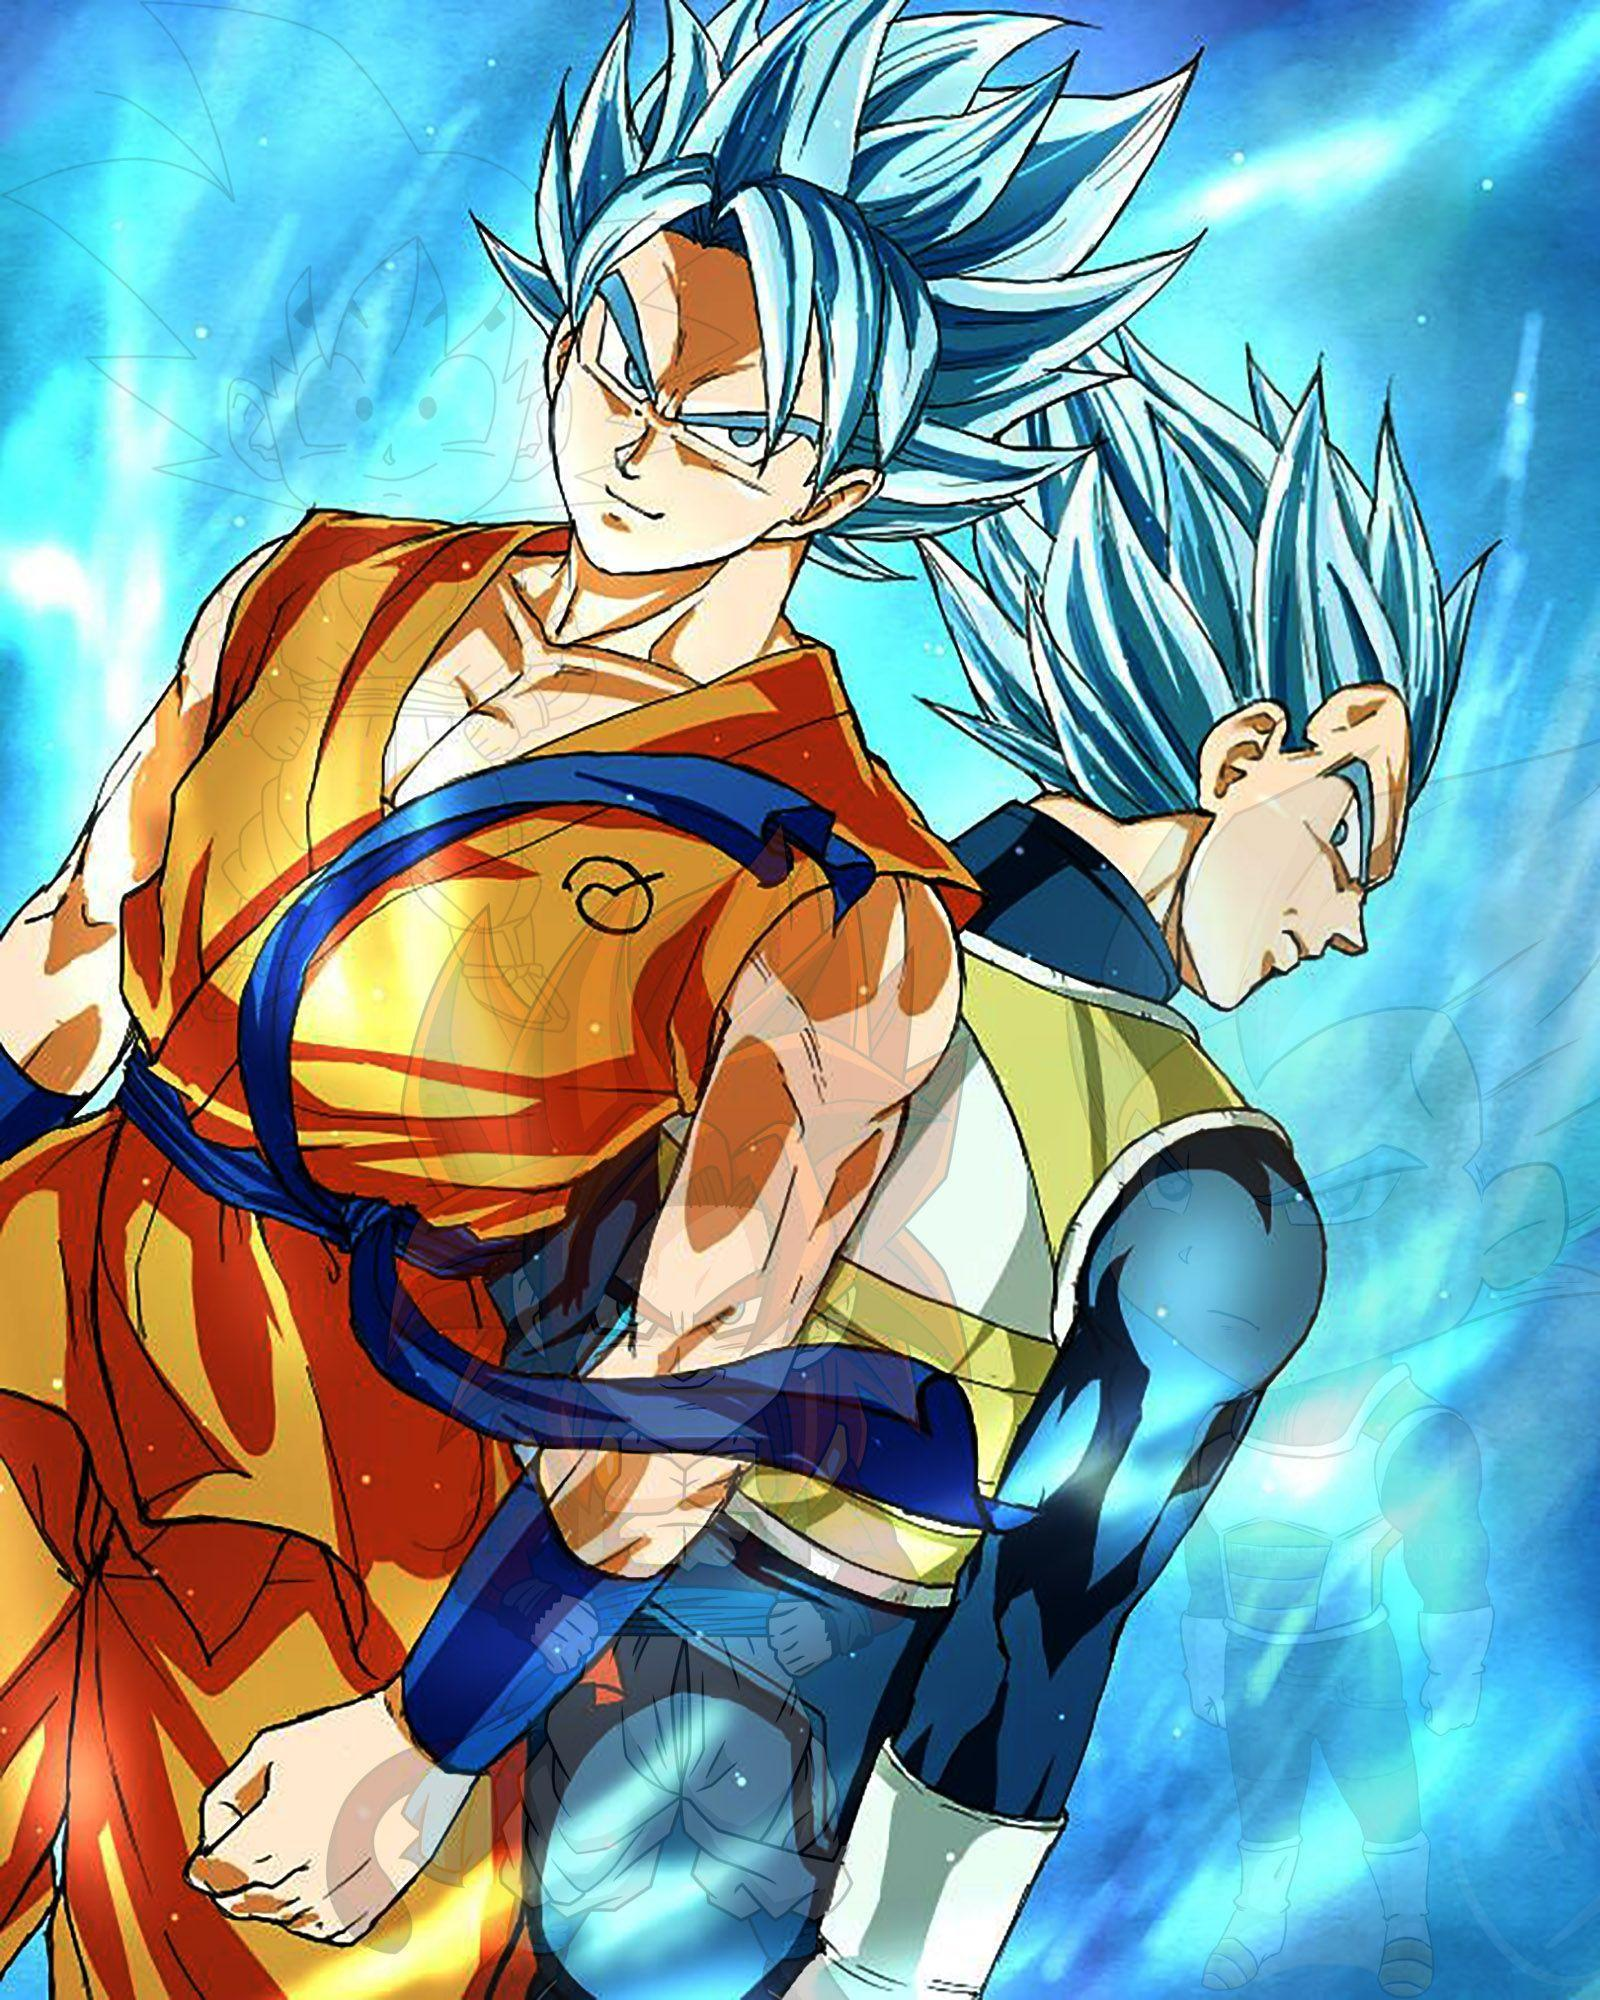 Dragon Ball Super Wallpaper Phone 49837 Hd Wallpaper